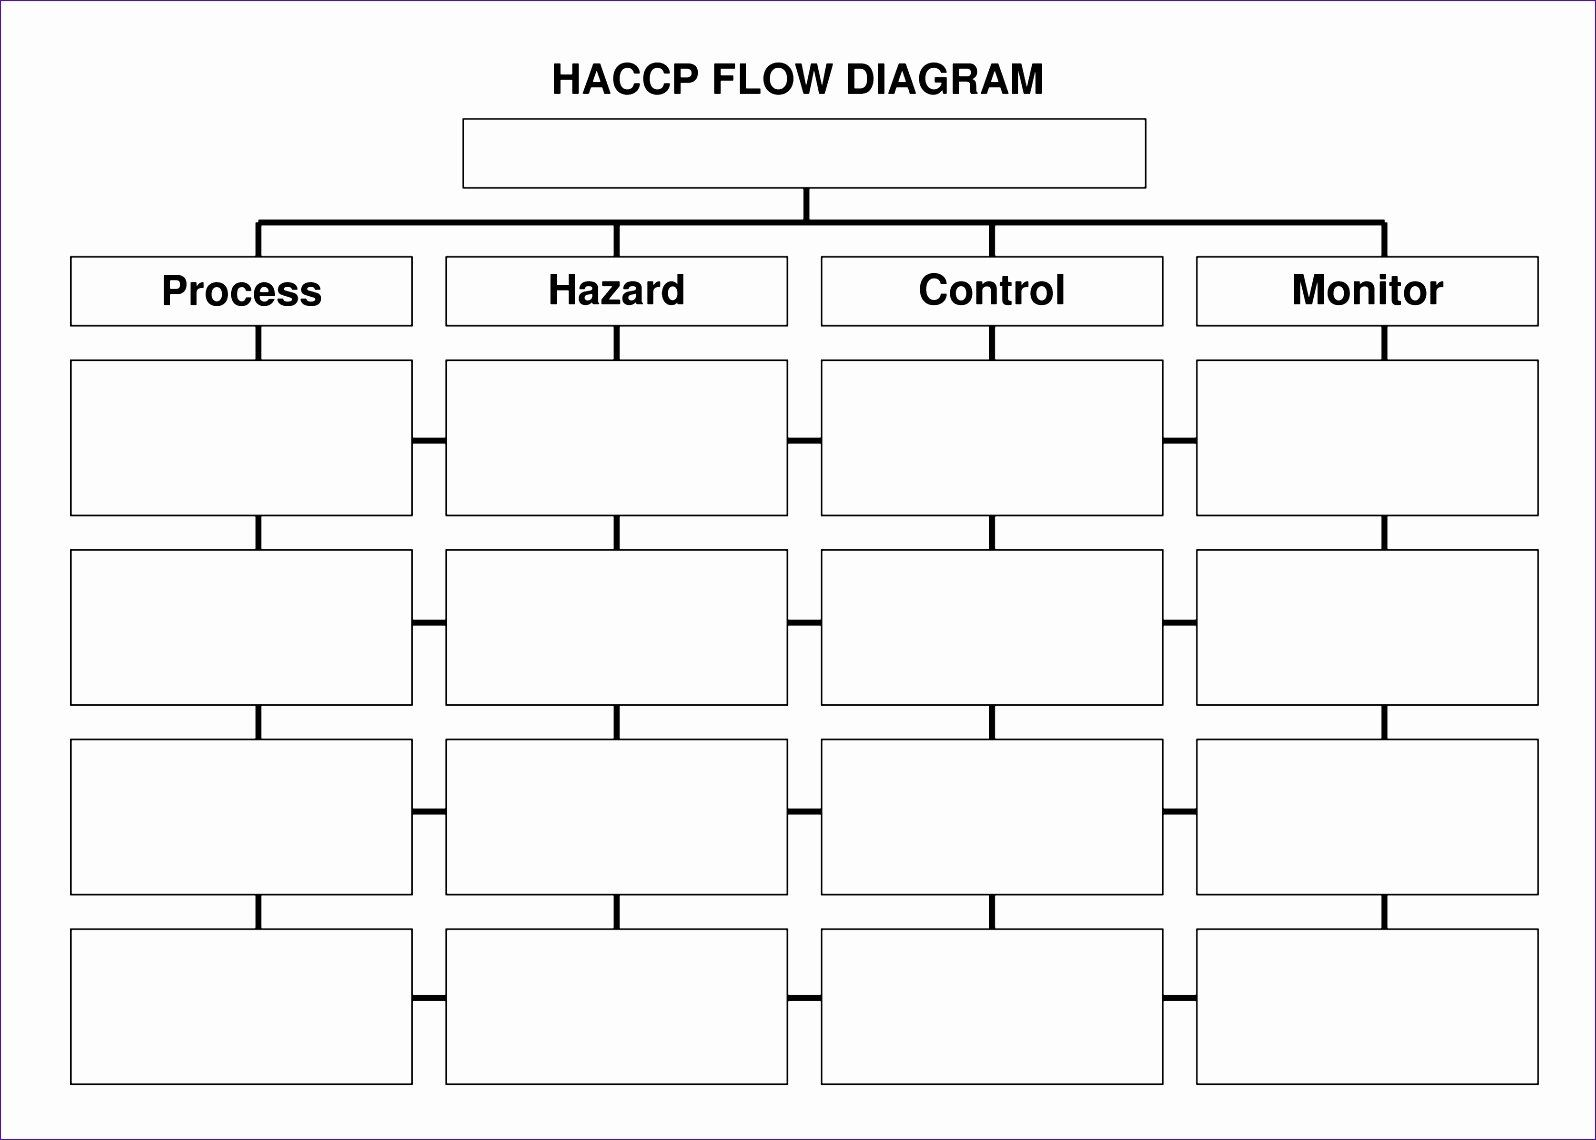 Blank Flowchart Template Awesome 12 Excel Process Flow Chart Template Exceltemplates In 2020 Process Flow Chart Template Flow Chart Template Process Flow Chart